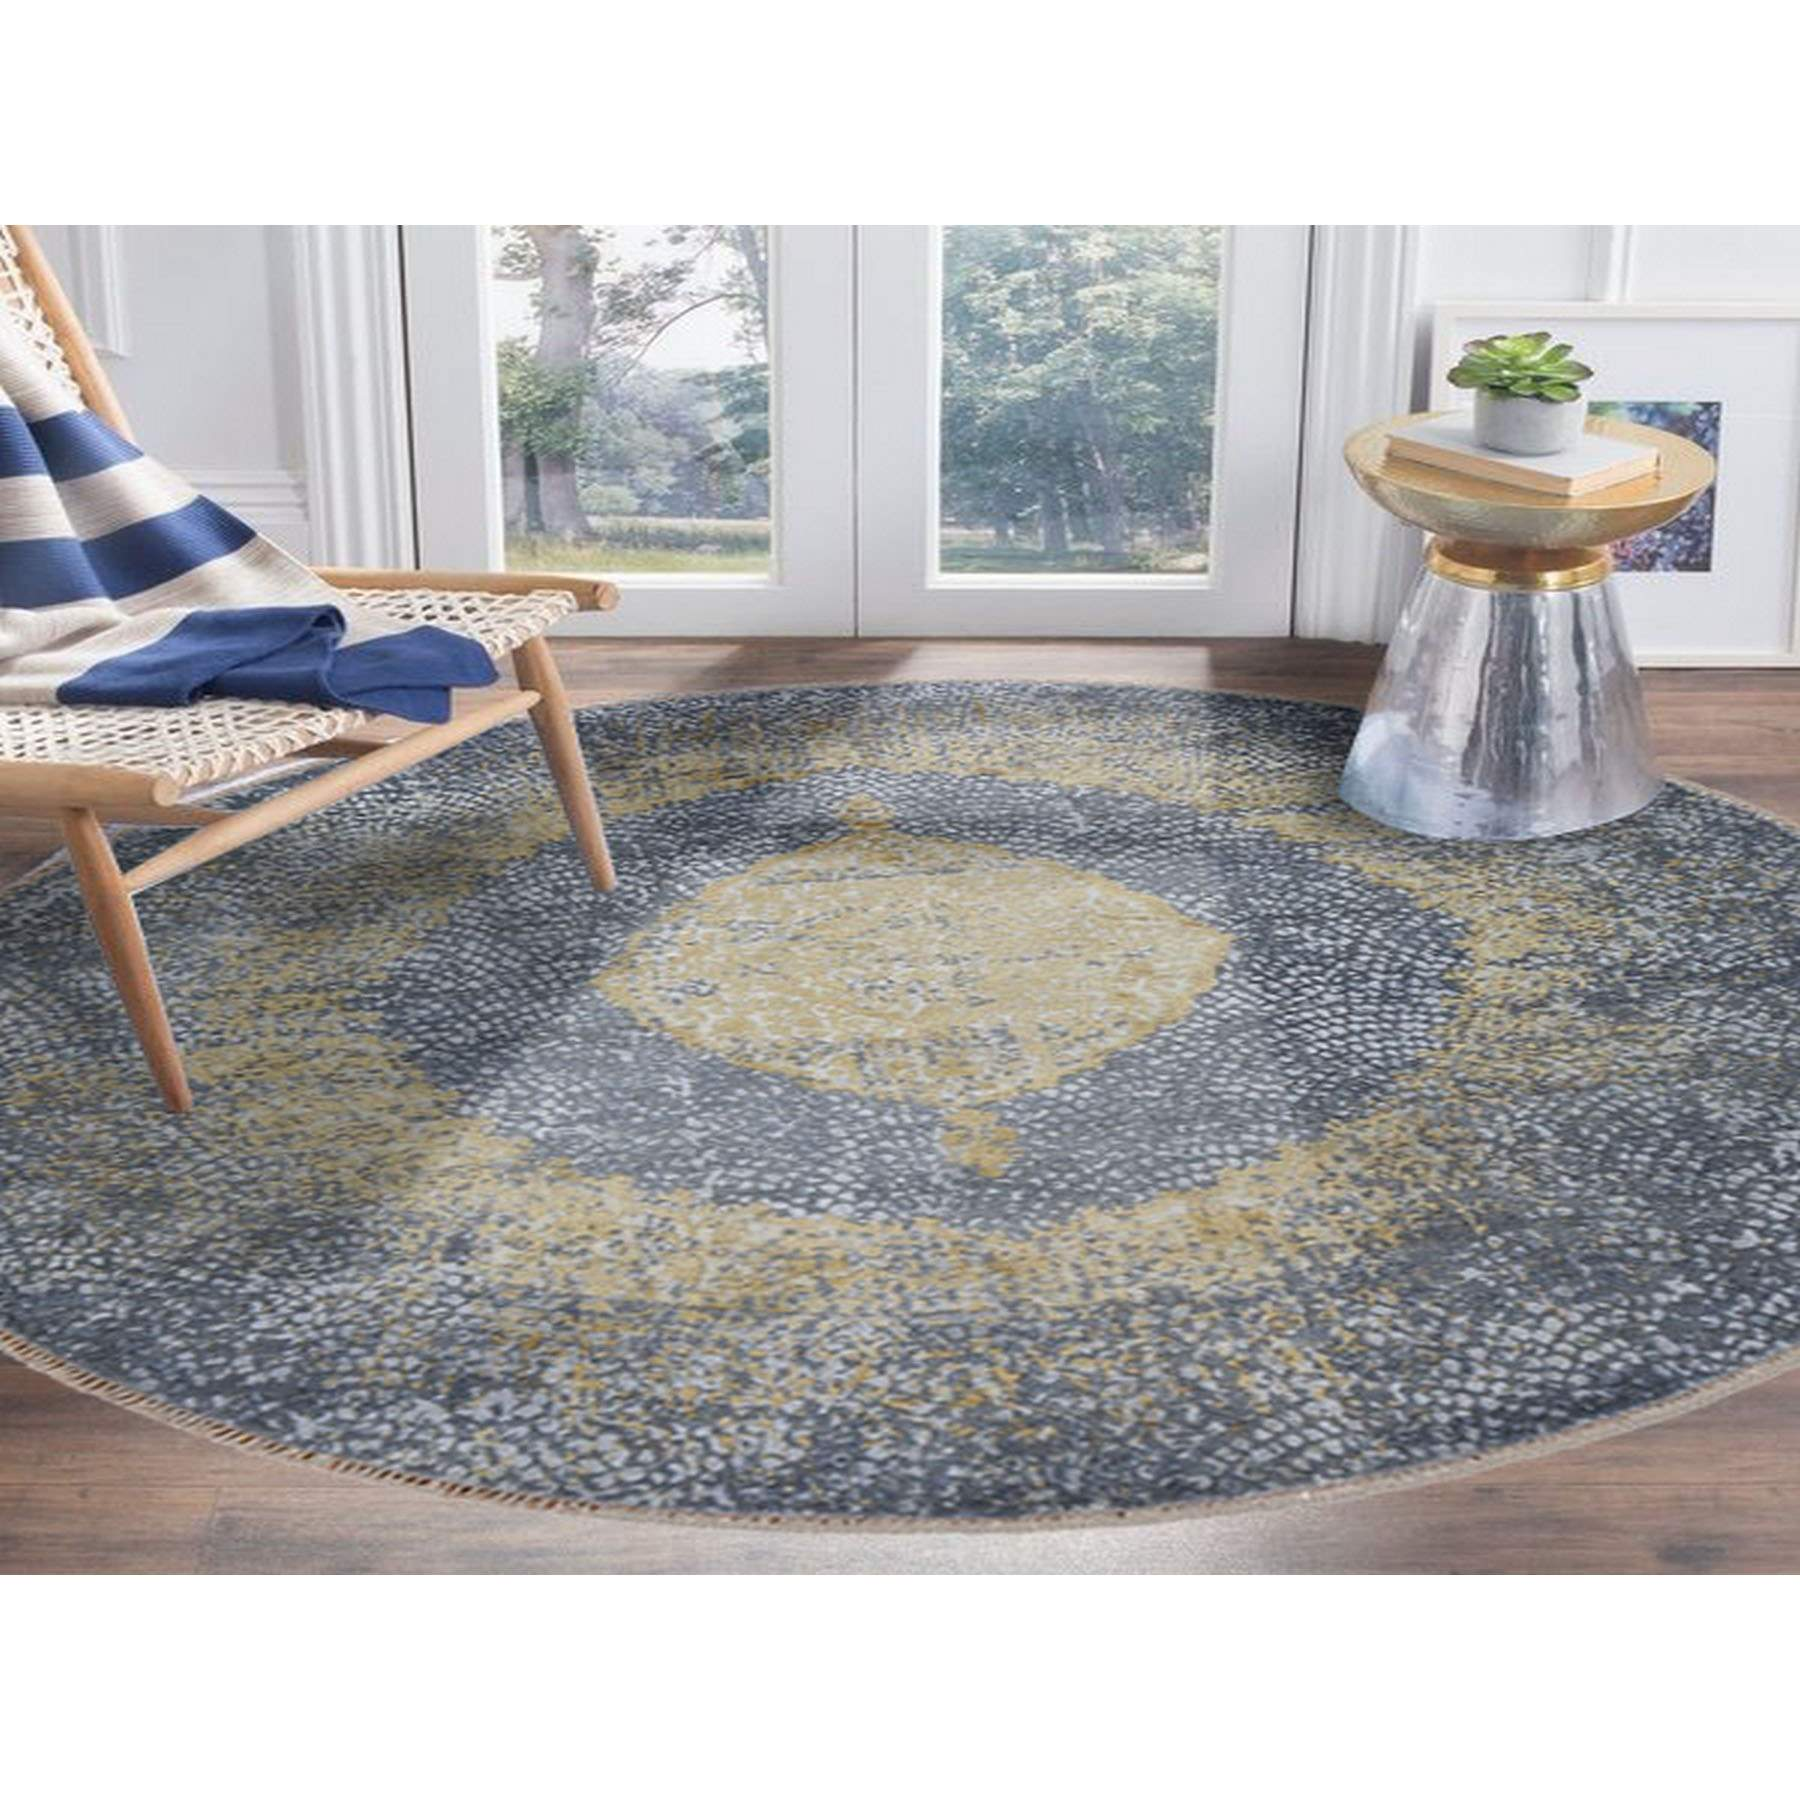 Transitional-Hand-Knotted-Rug-236035